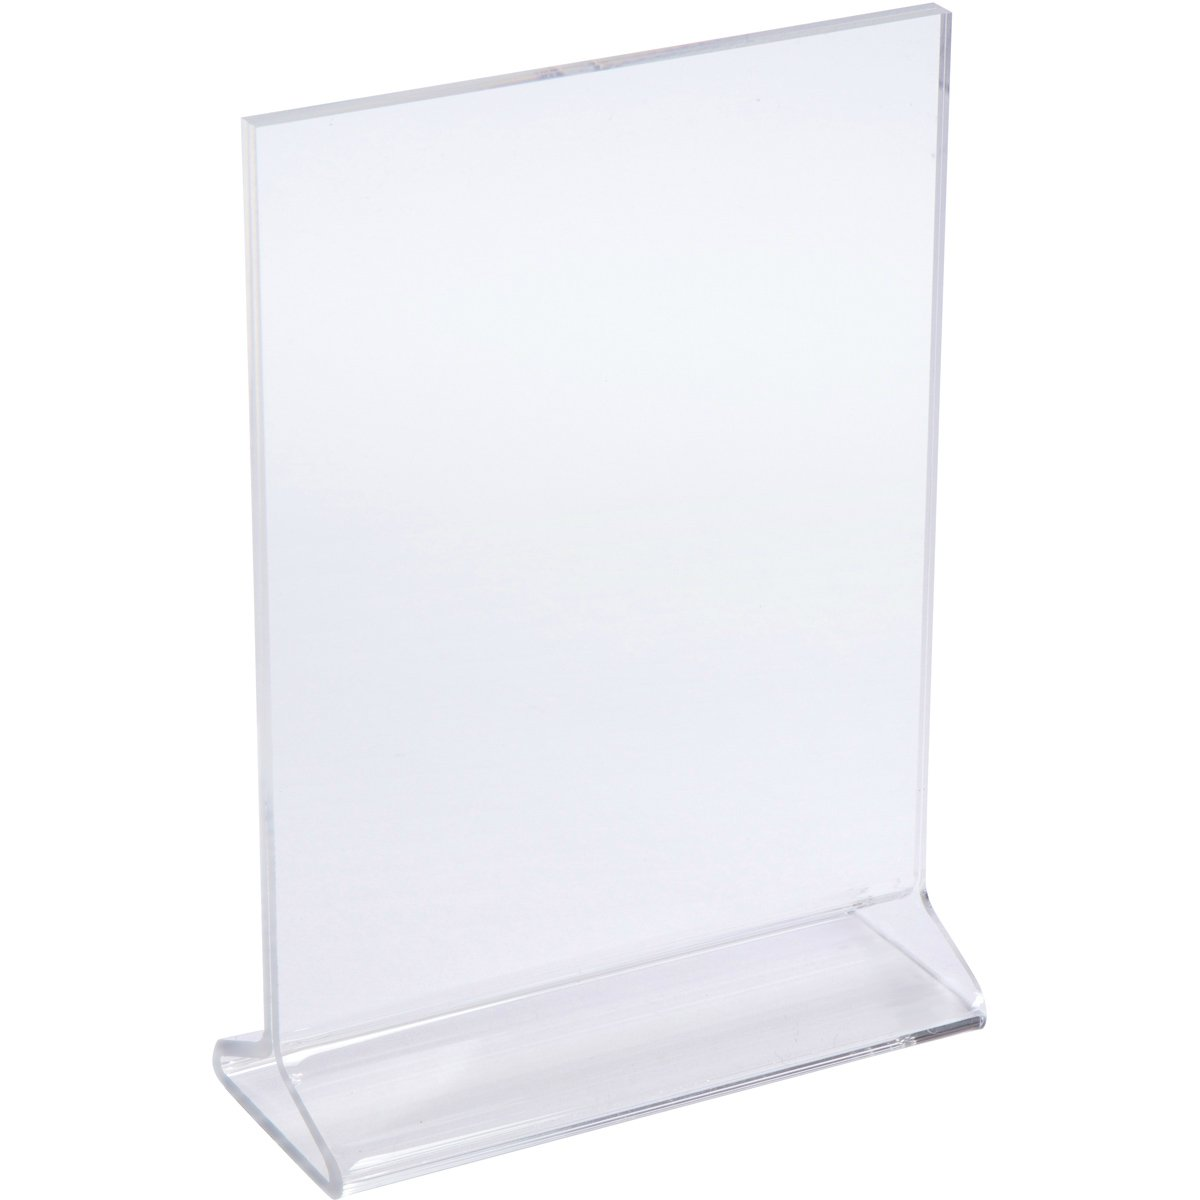 Elite Display Thick Acrylic Picture Frames 5x7, Clear Plastic Photo Frames, Sign Holders, Menu Holders, Display Stands (6-pack)